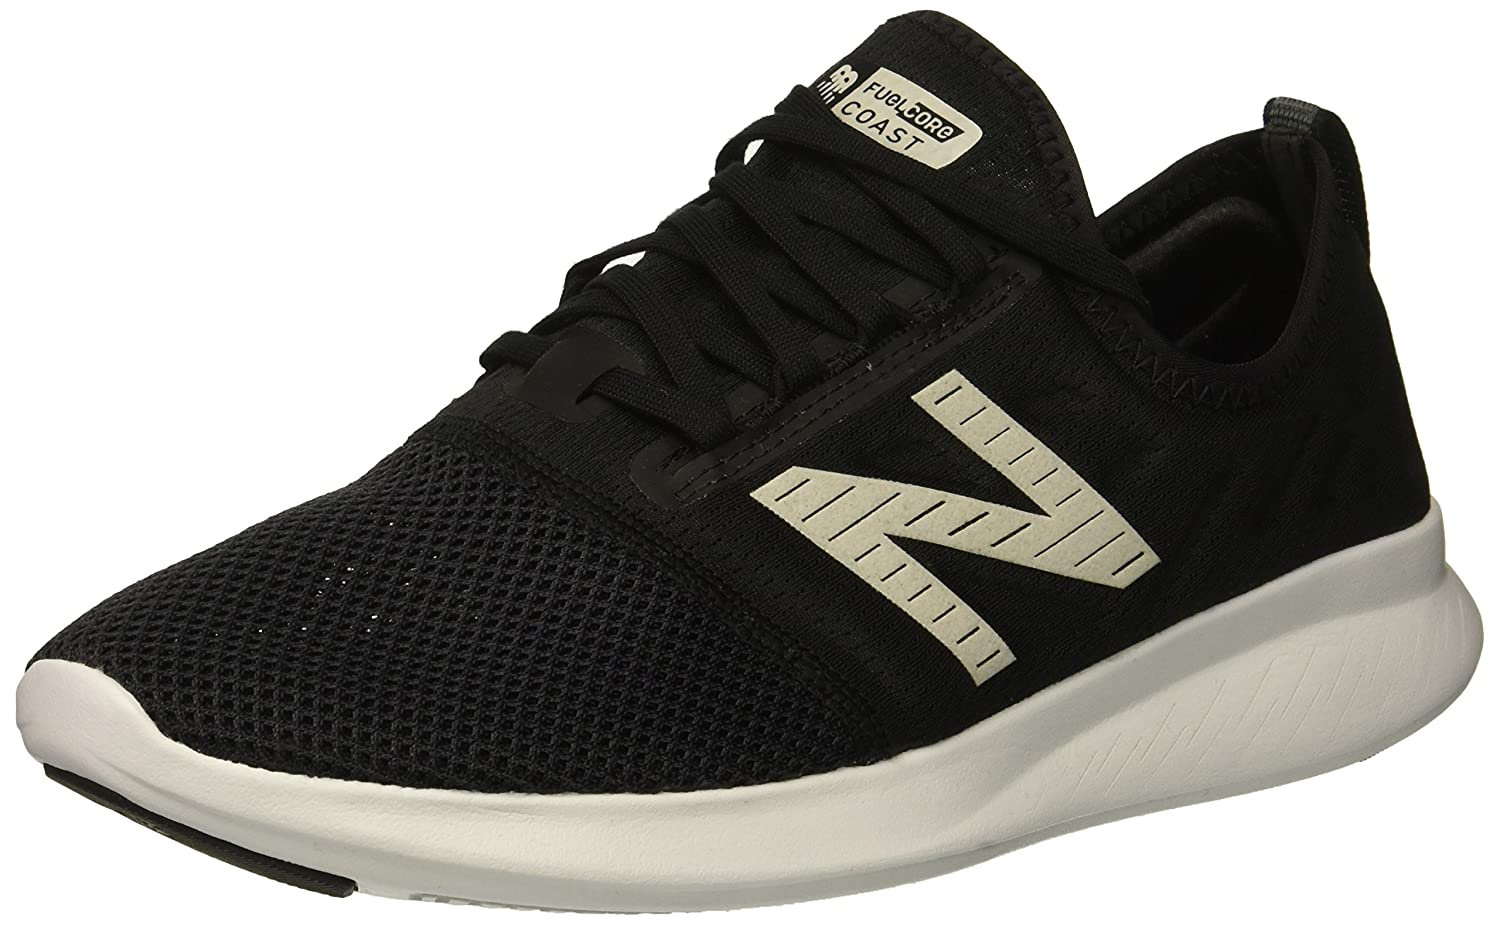 New Balance Women's Coast V4 FuelCore Running Shoe B075R7JN75 5.5 D US|Black/White